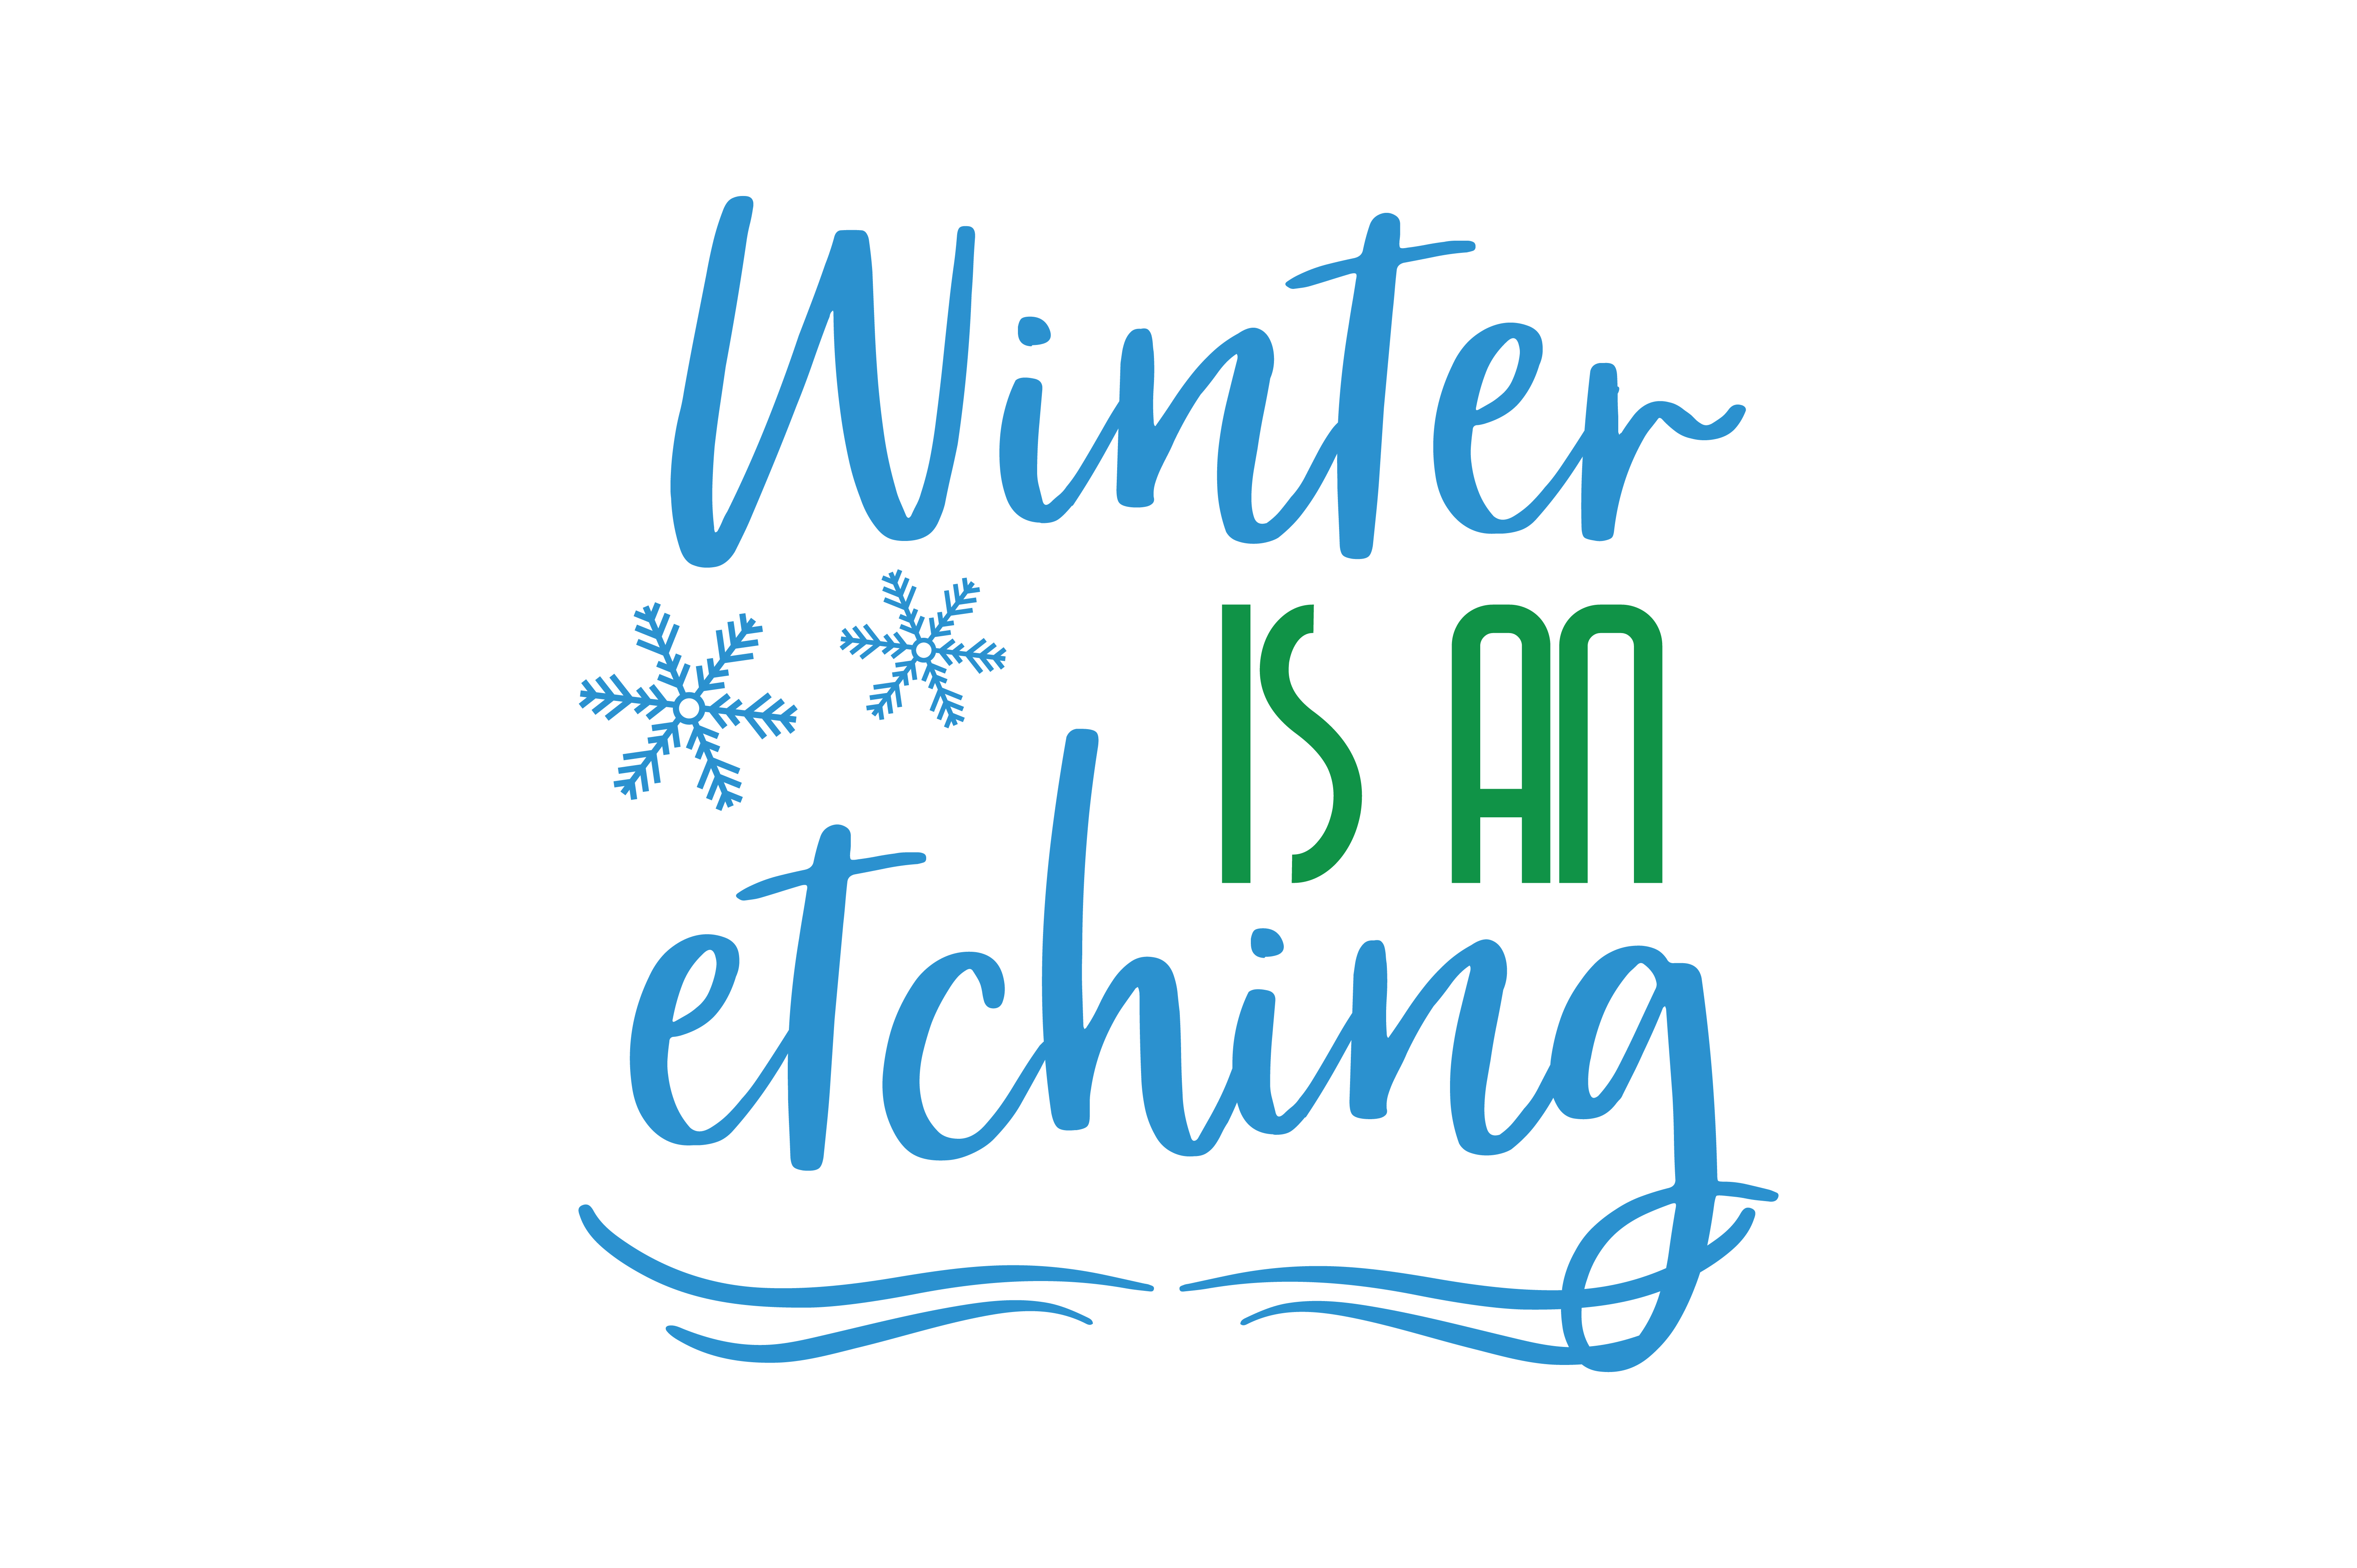 Download Free Winter Is An Etching Quote Svg Cut Graphic By Thelucky for Cricut Explore, Silhouette and other cutting machines.